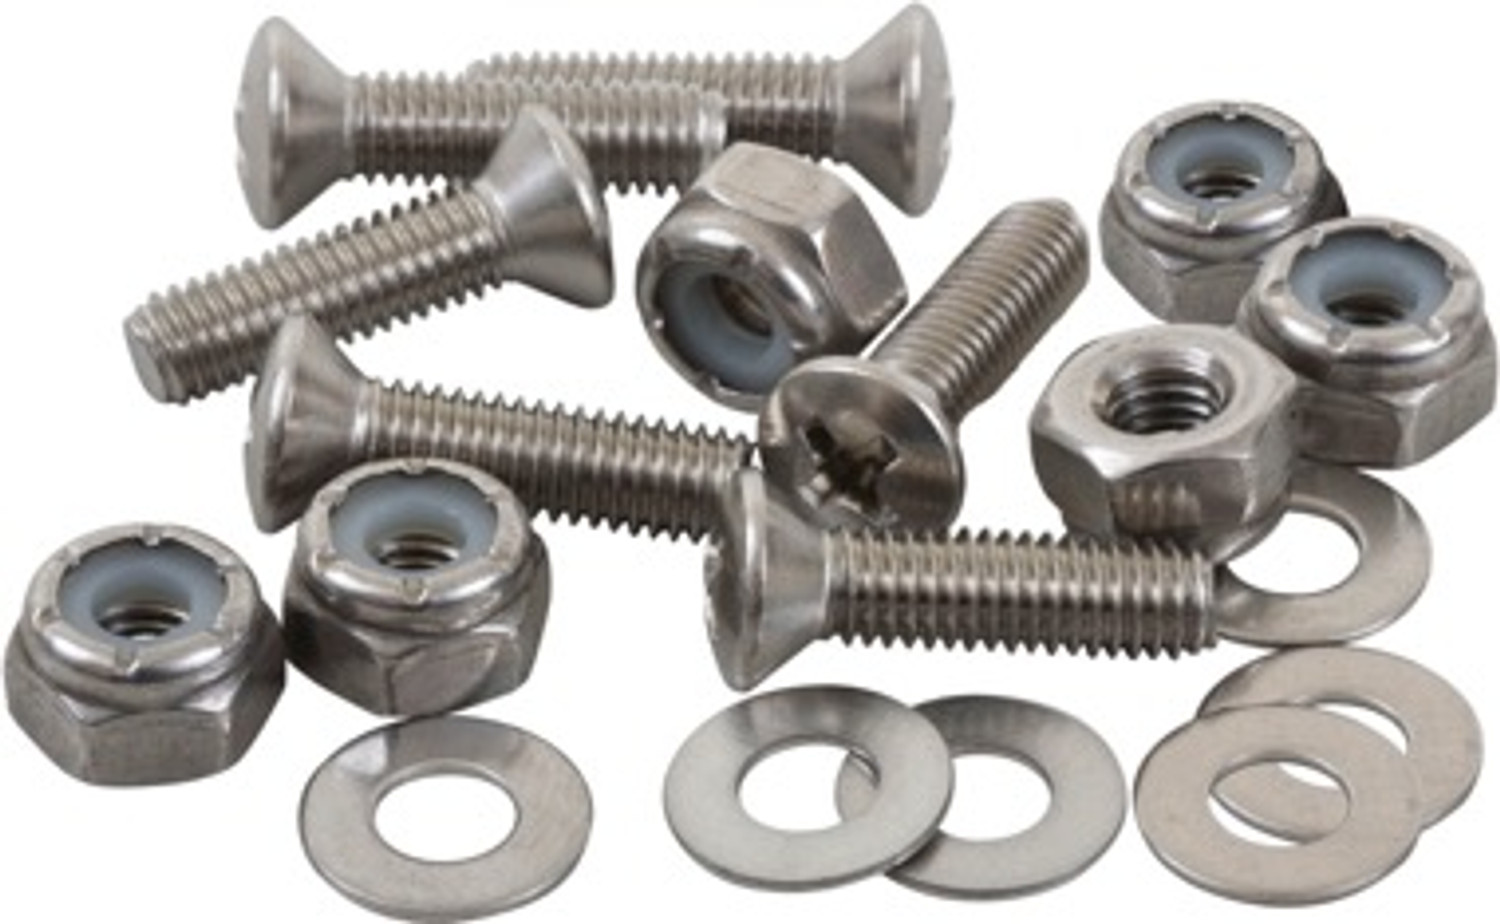 Bolt with Nyloc Nut and Washer